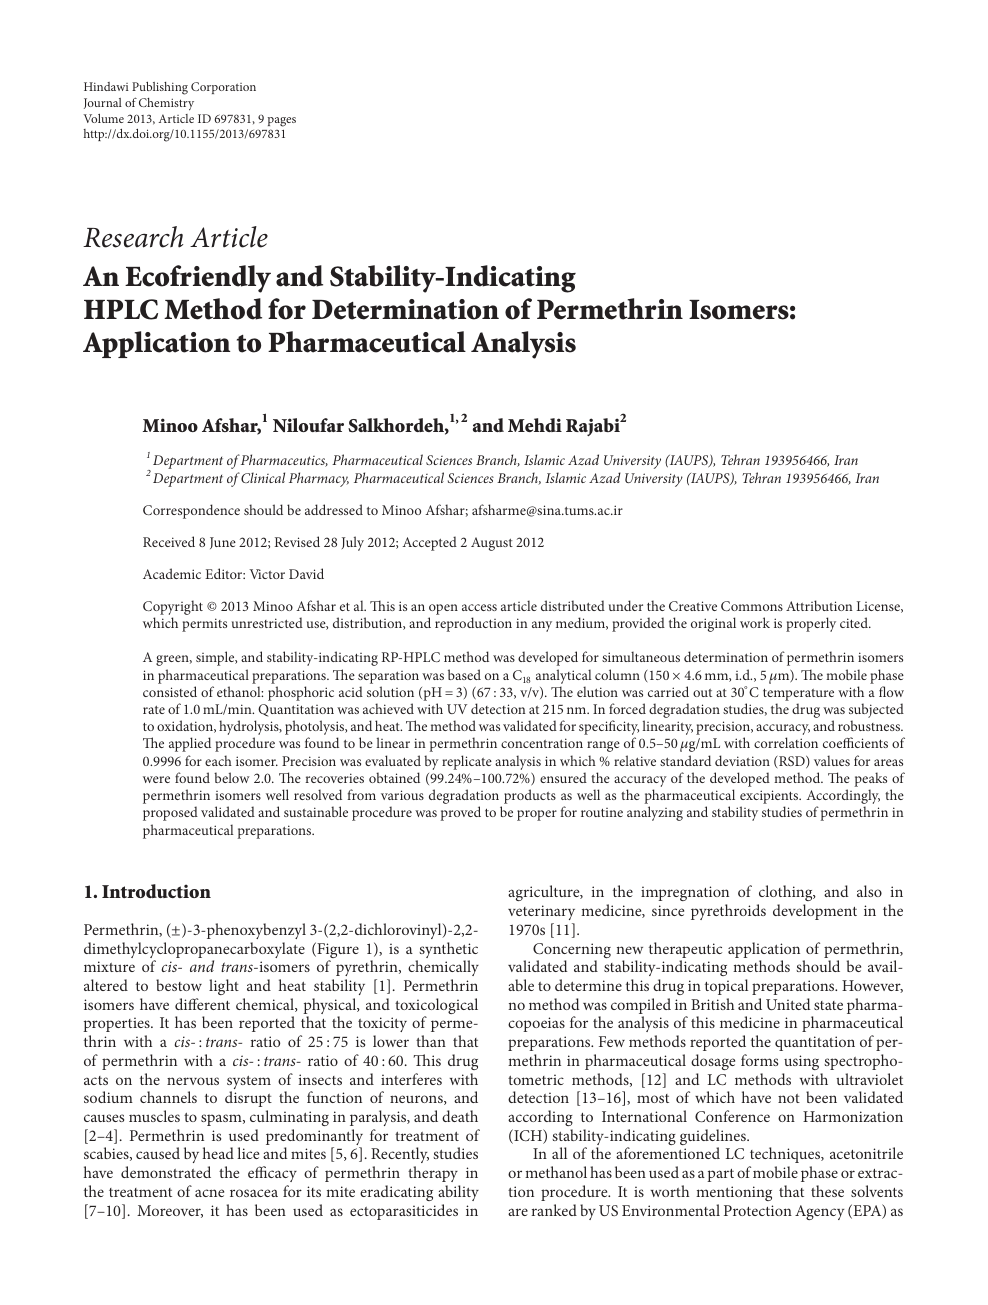 An Ecofriendly and Stability-Indicating HPLC Method for